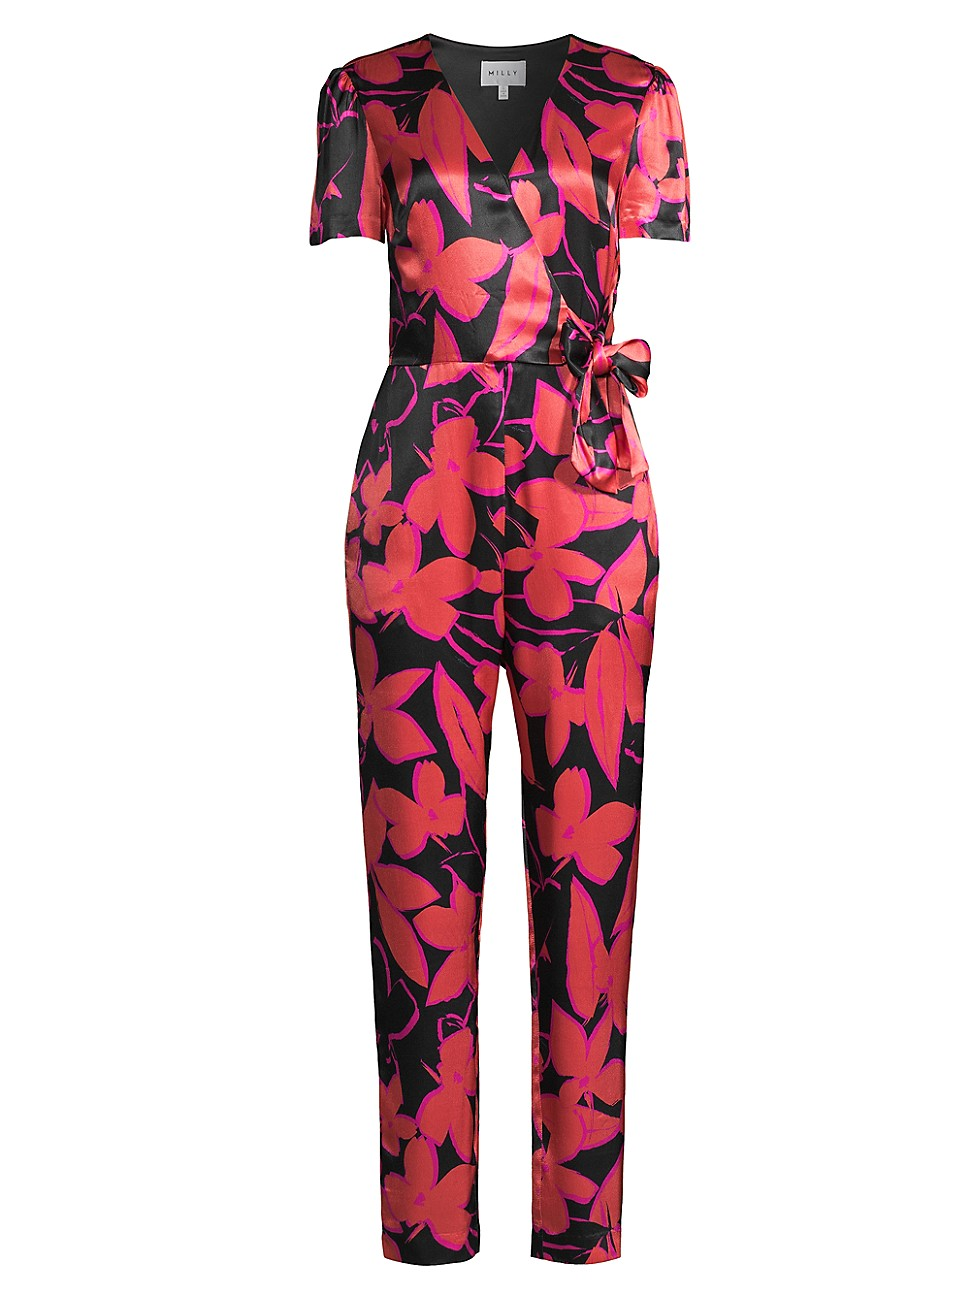 Milly WOMEN'S GARLAND FLORAL JUMPSUIT